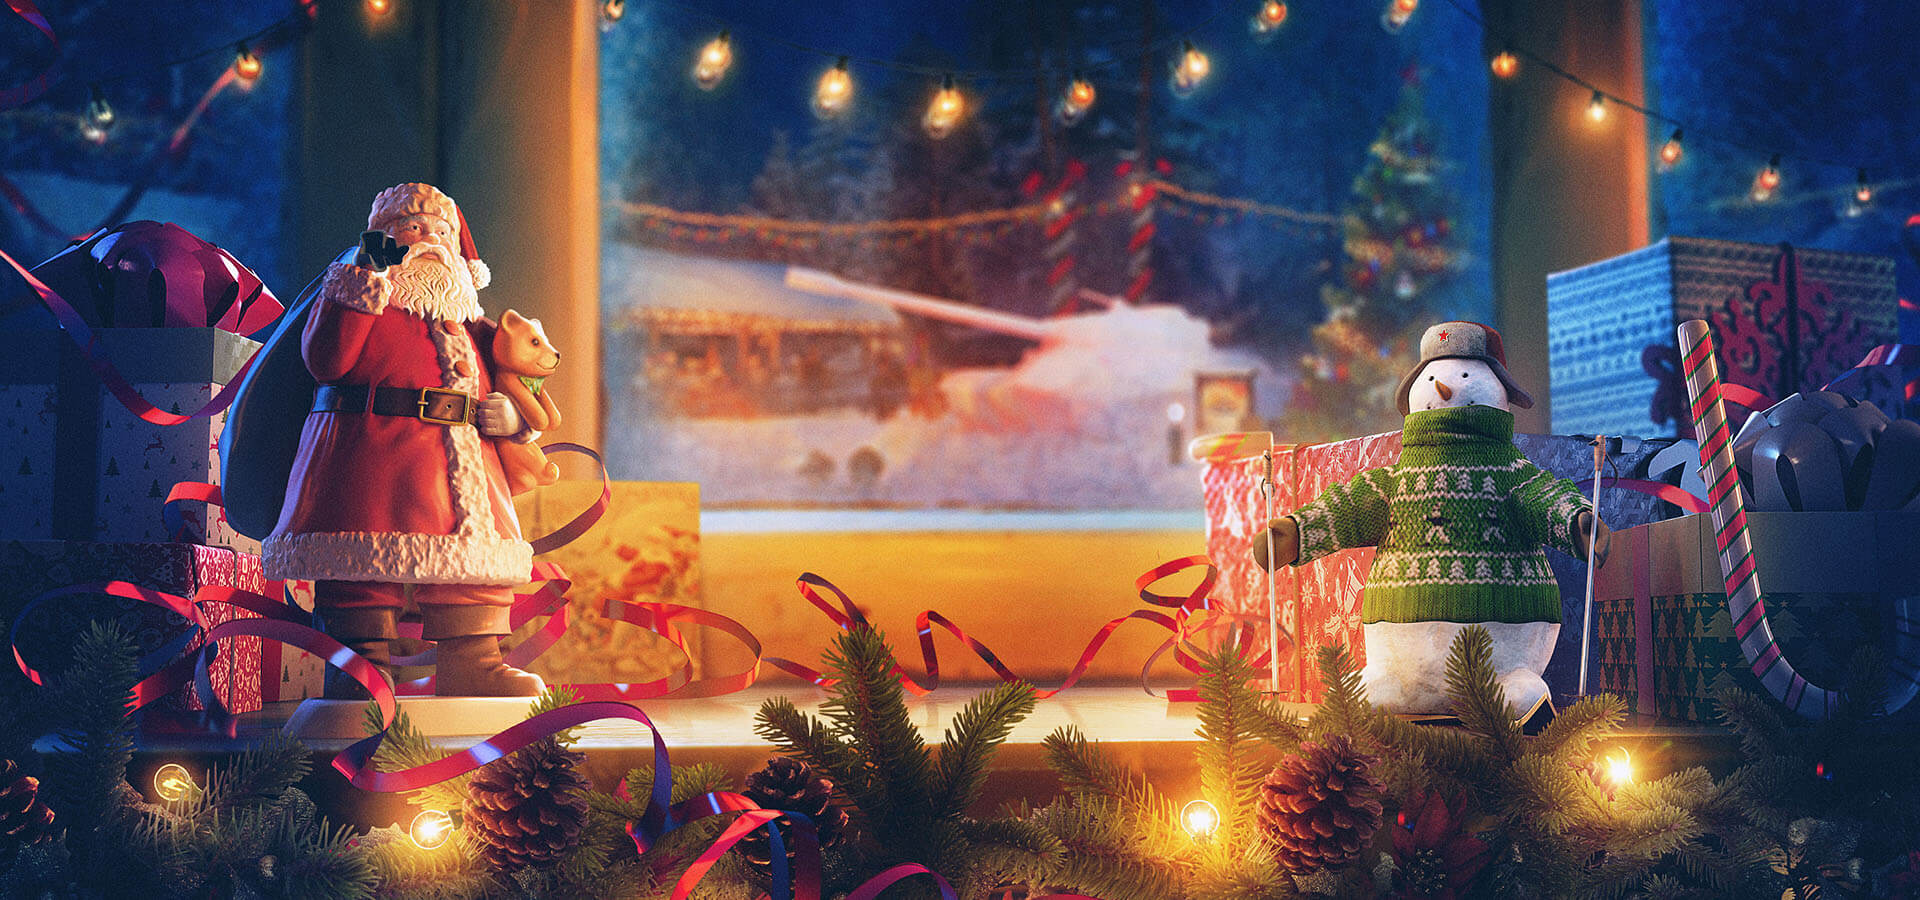 World Of Tanks Advent Calendar 2020 World of Tanks Holiday Ops 2019: Gift Boxes Unveiled